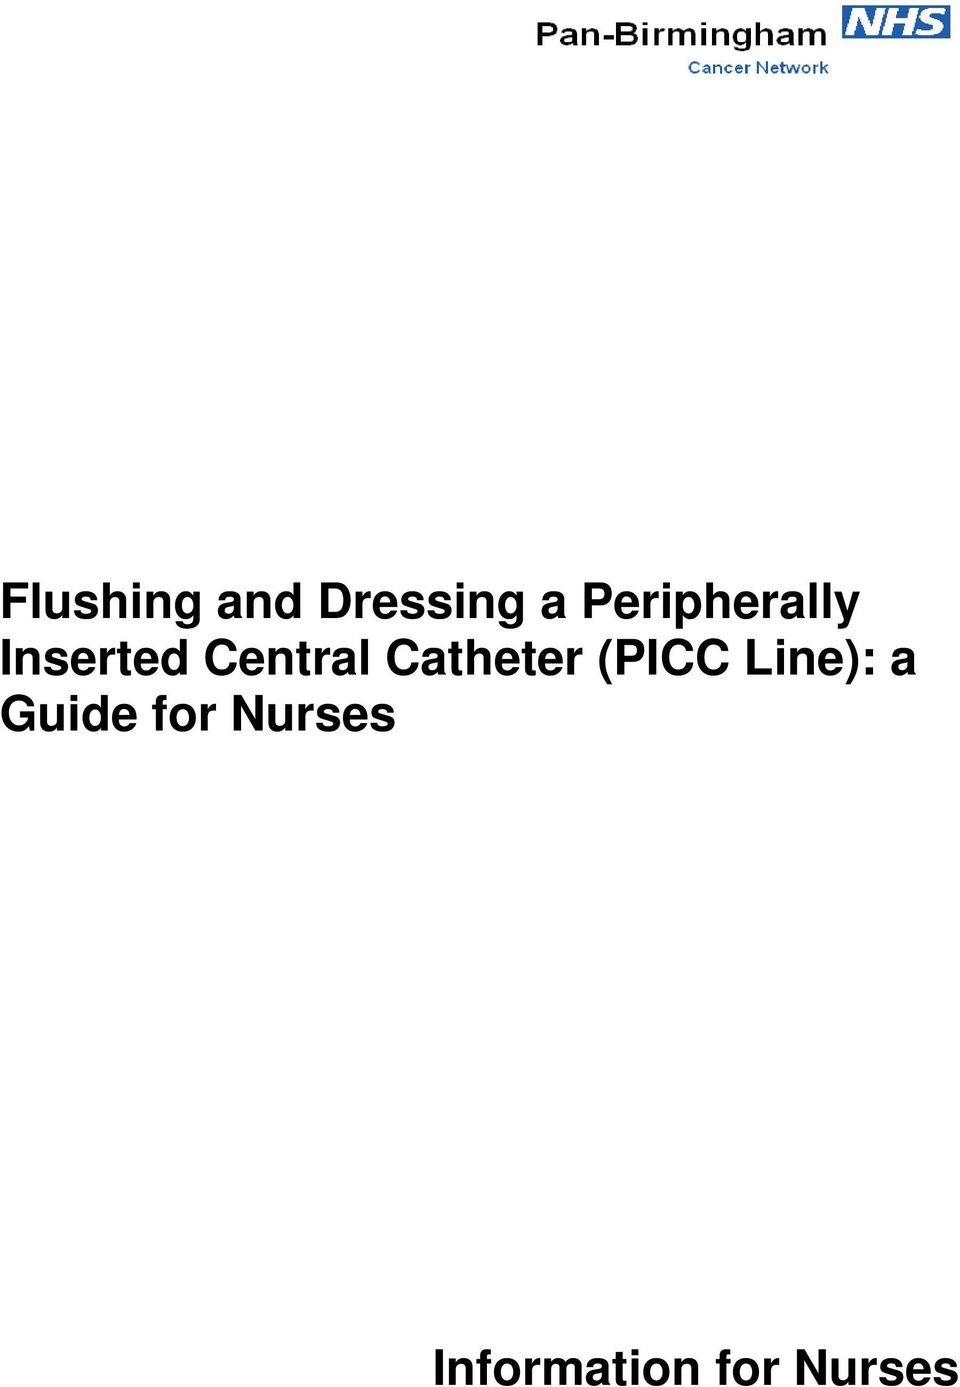 Flushing And Dressing A Peripherally Inserted Central Catheter Picc